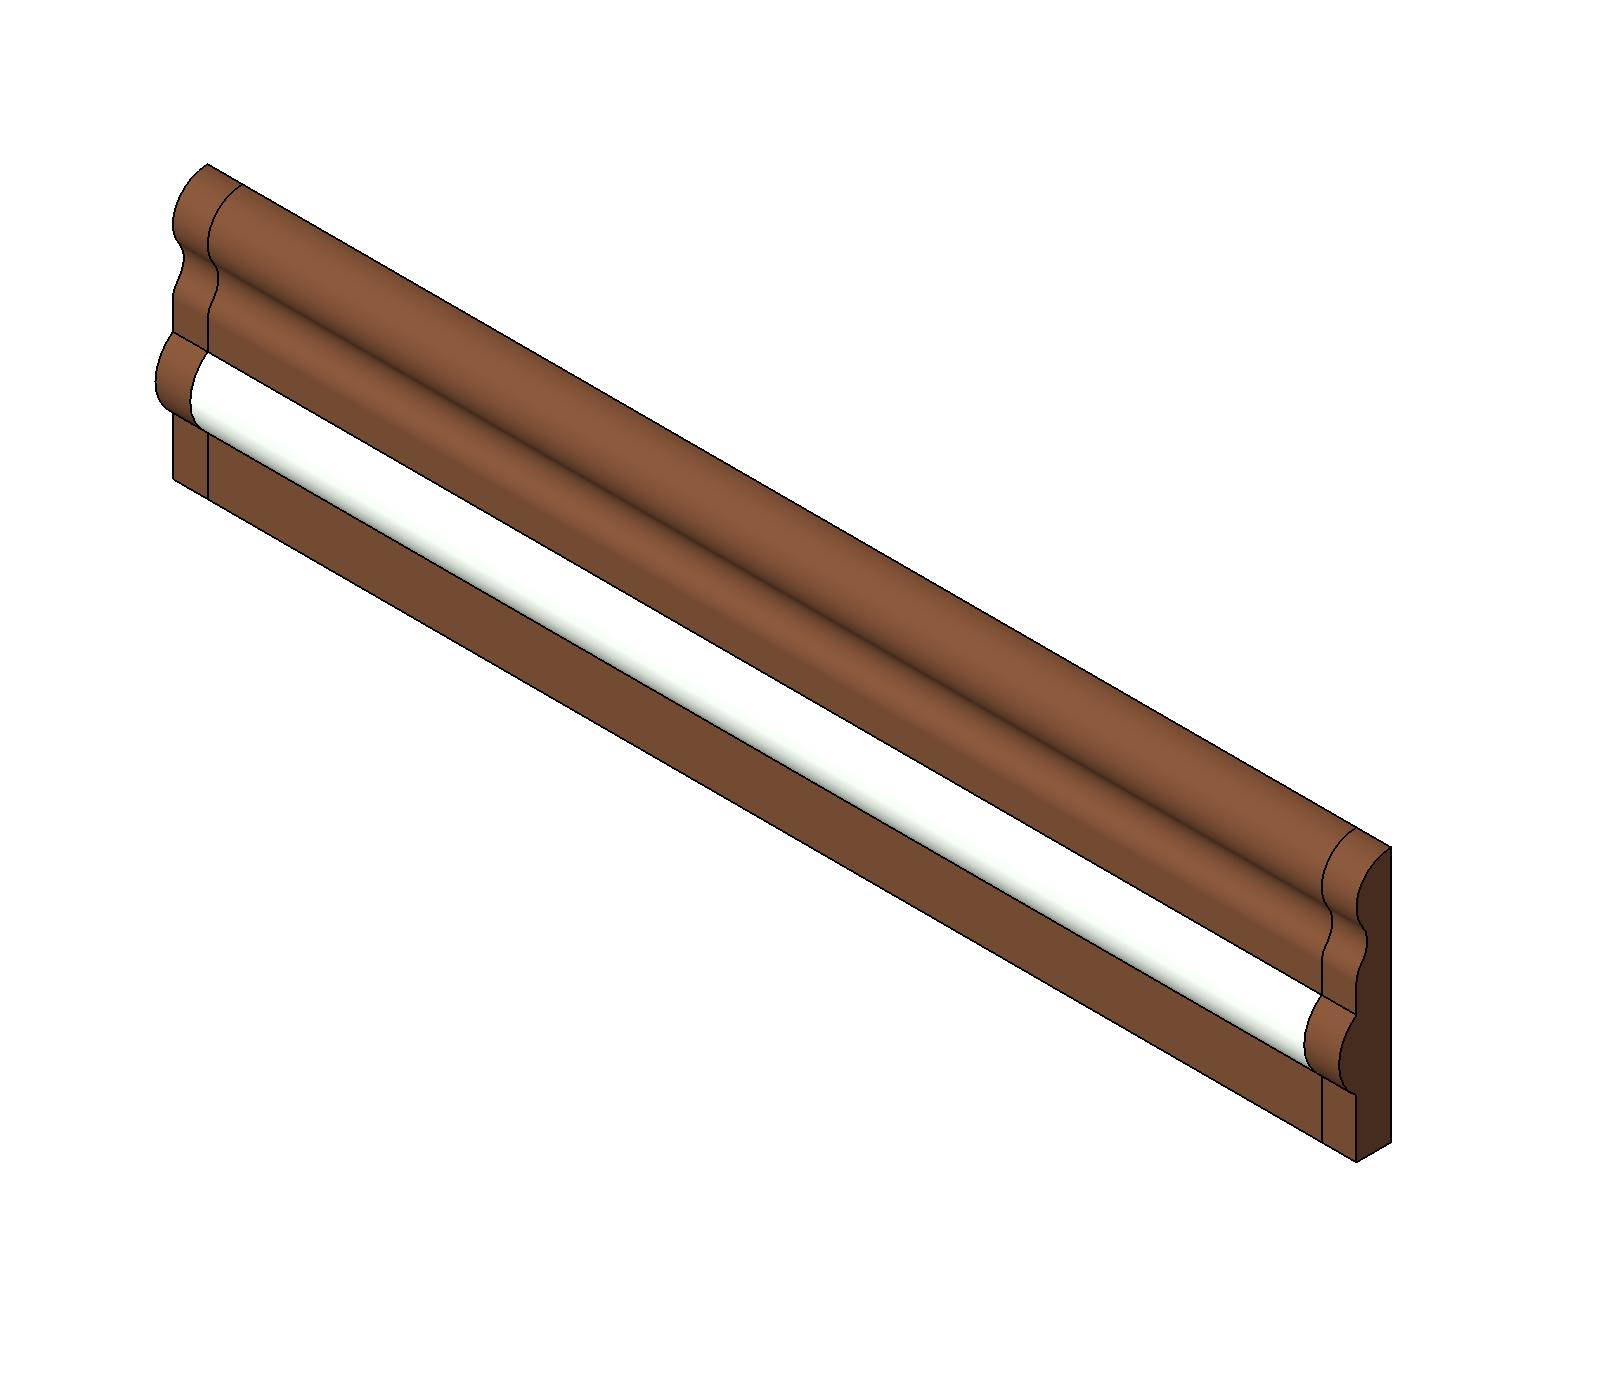 Chair Rail Revit Part - 25: Pawling Corp., Architectural Products Div. BIM Content